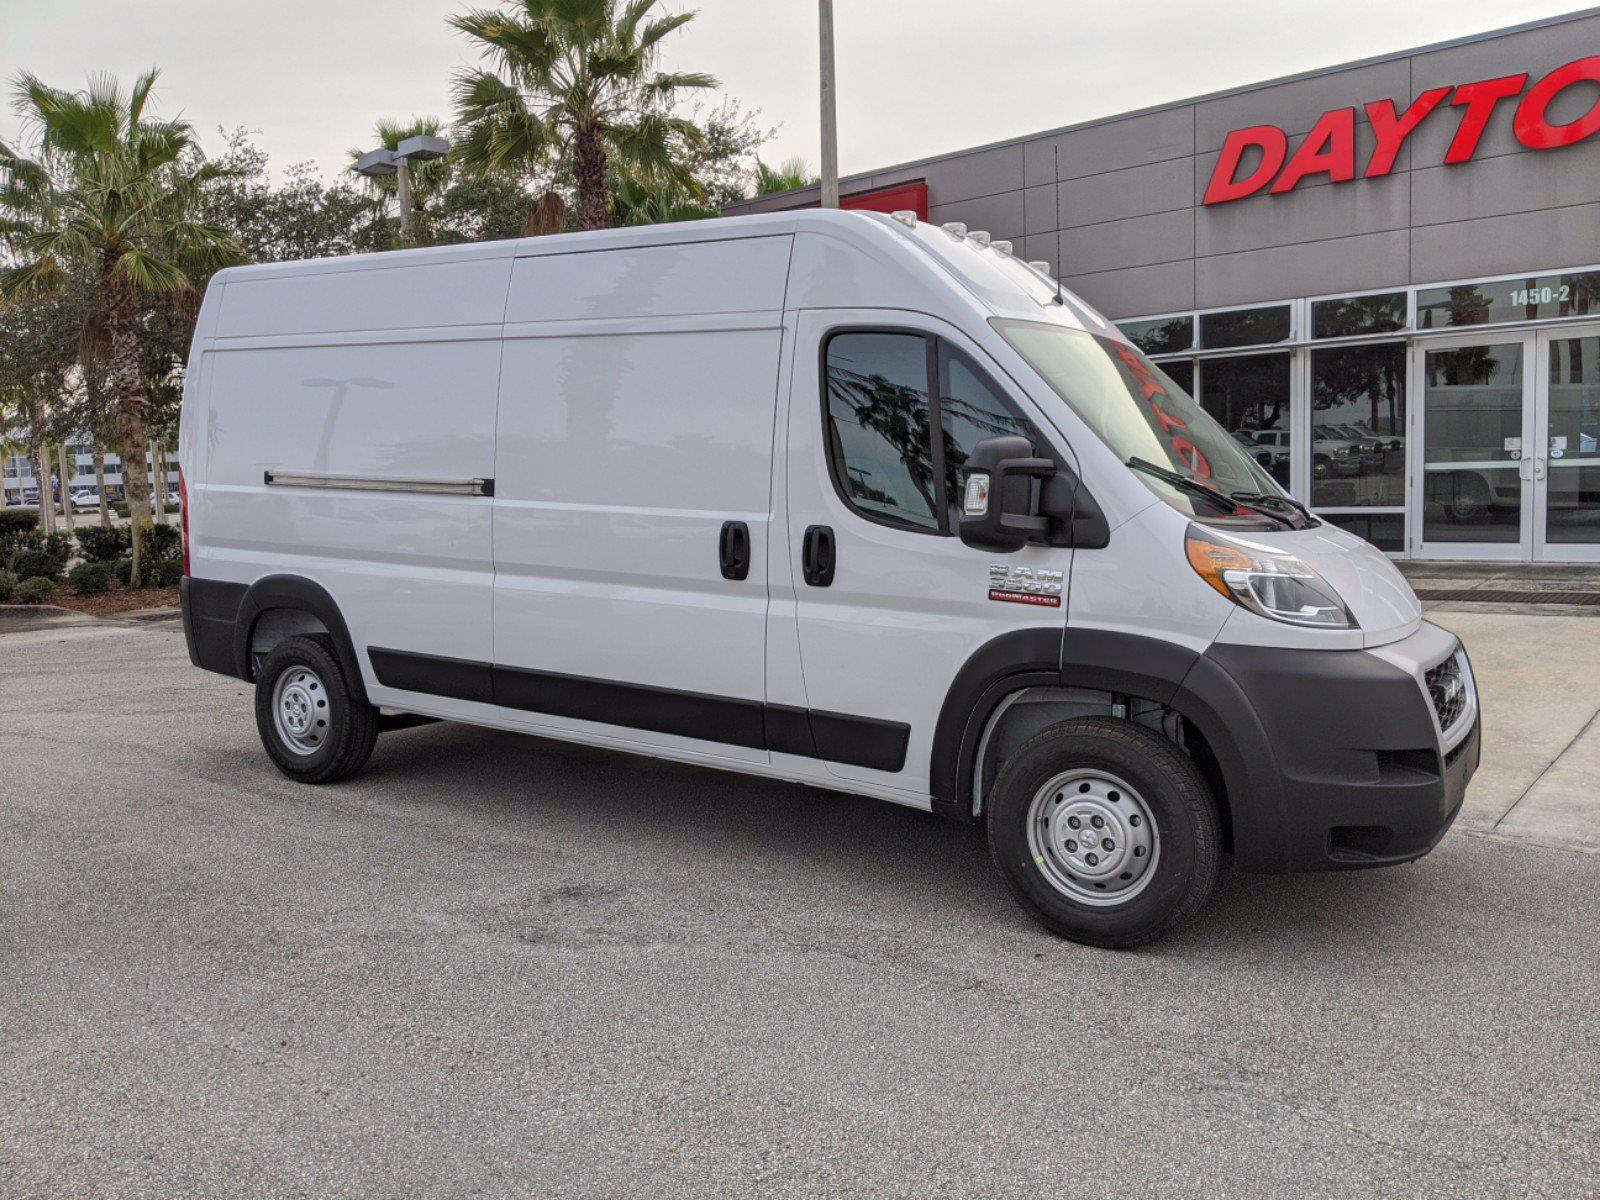 2021 Ram ProMaster 3500 FWD, Empty Cargo Van #R21178 - photo 1